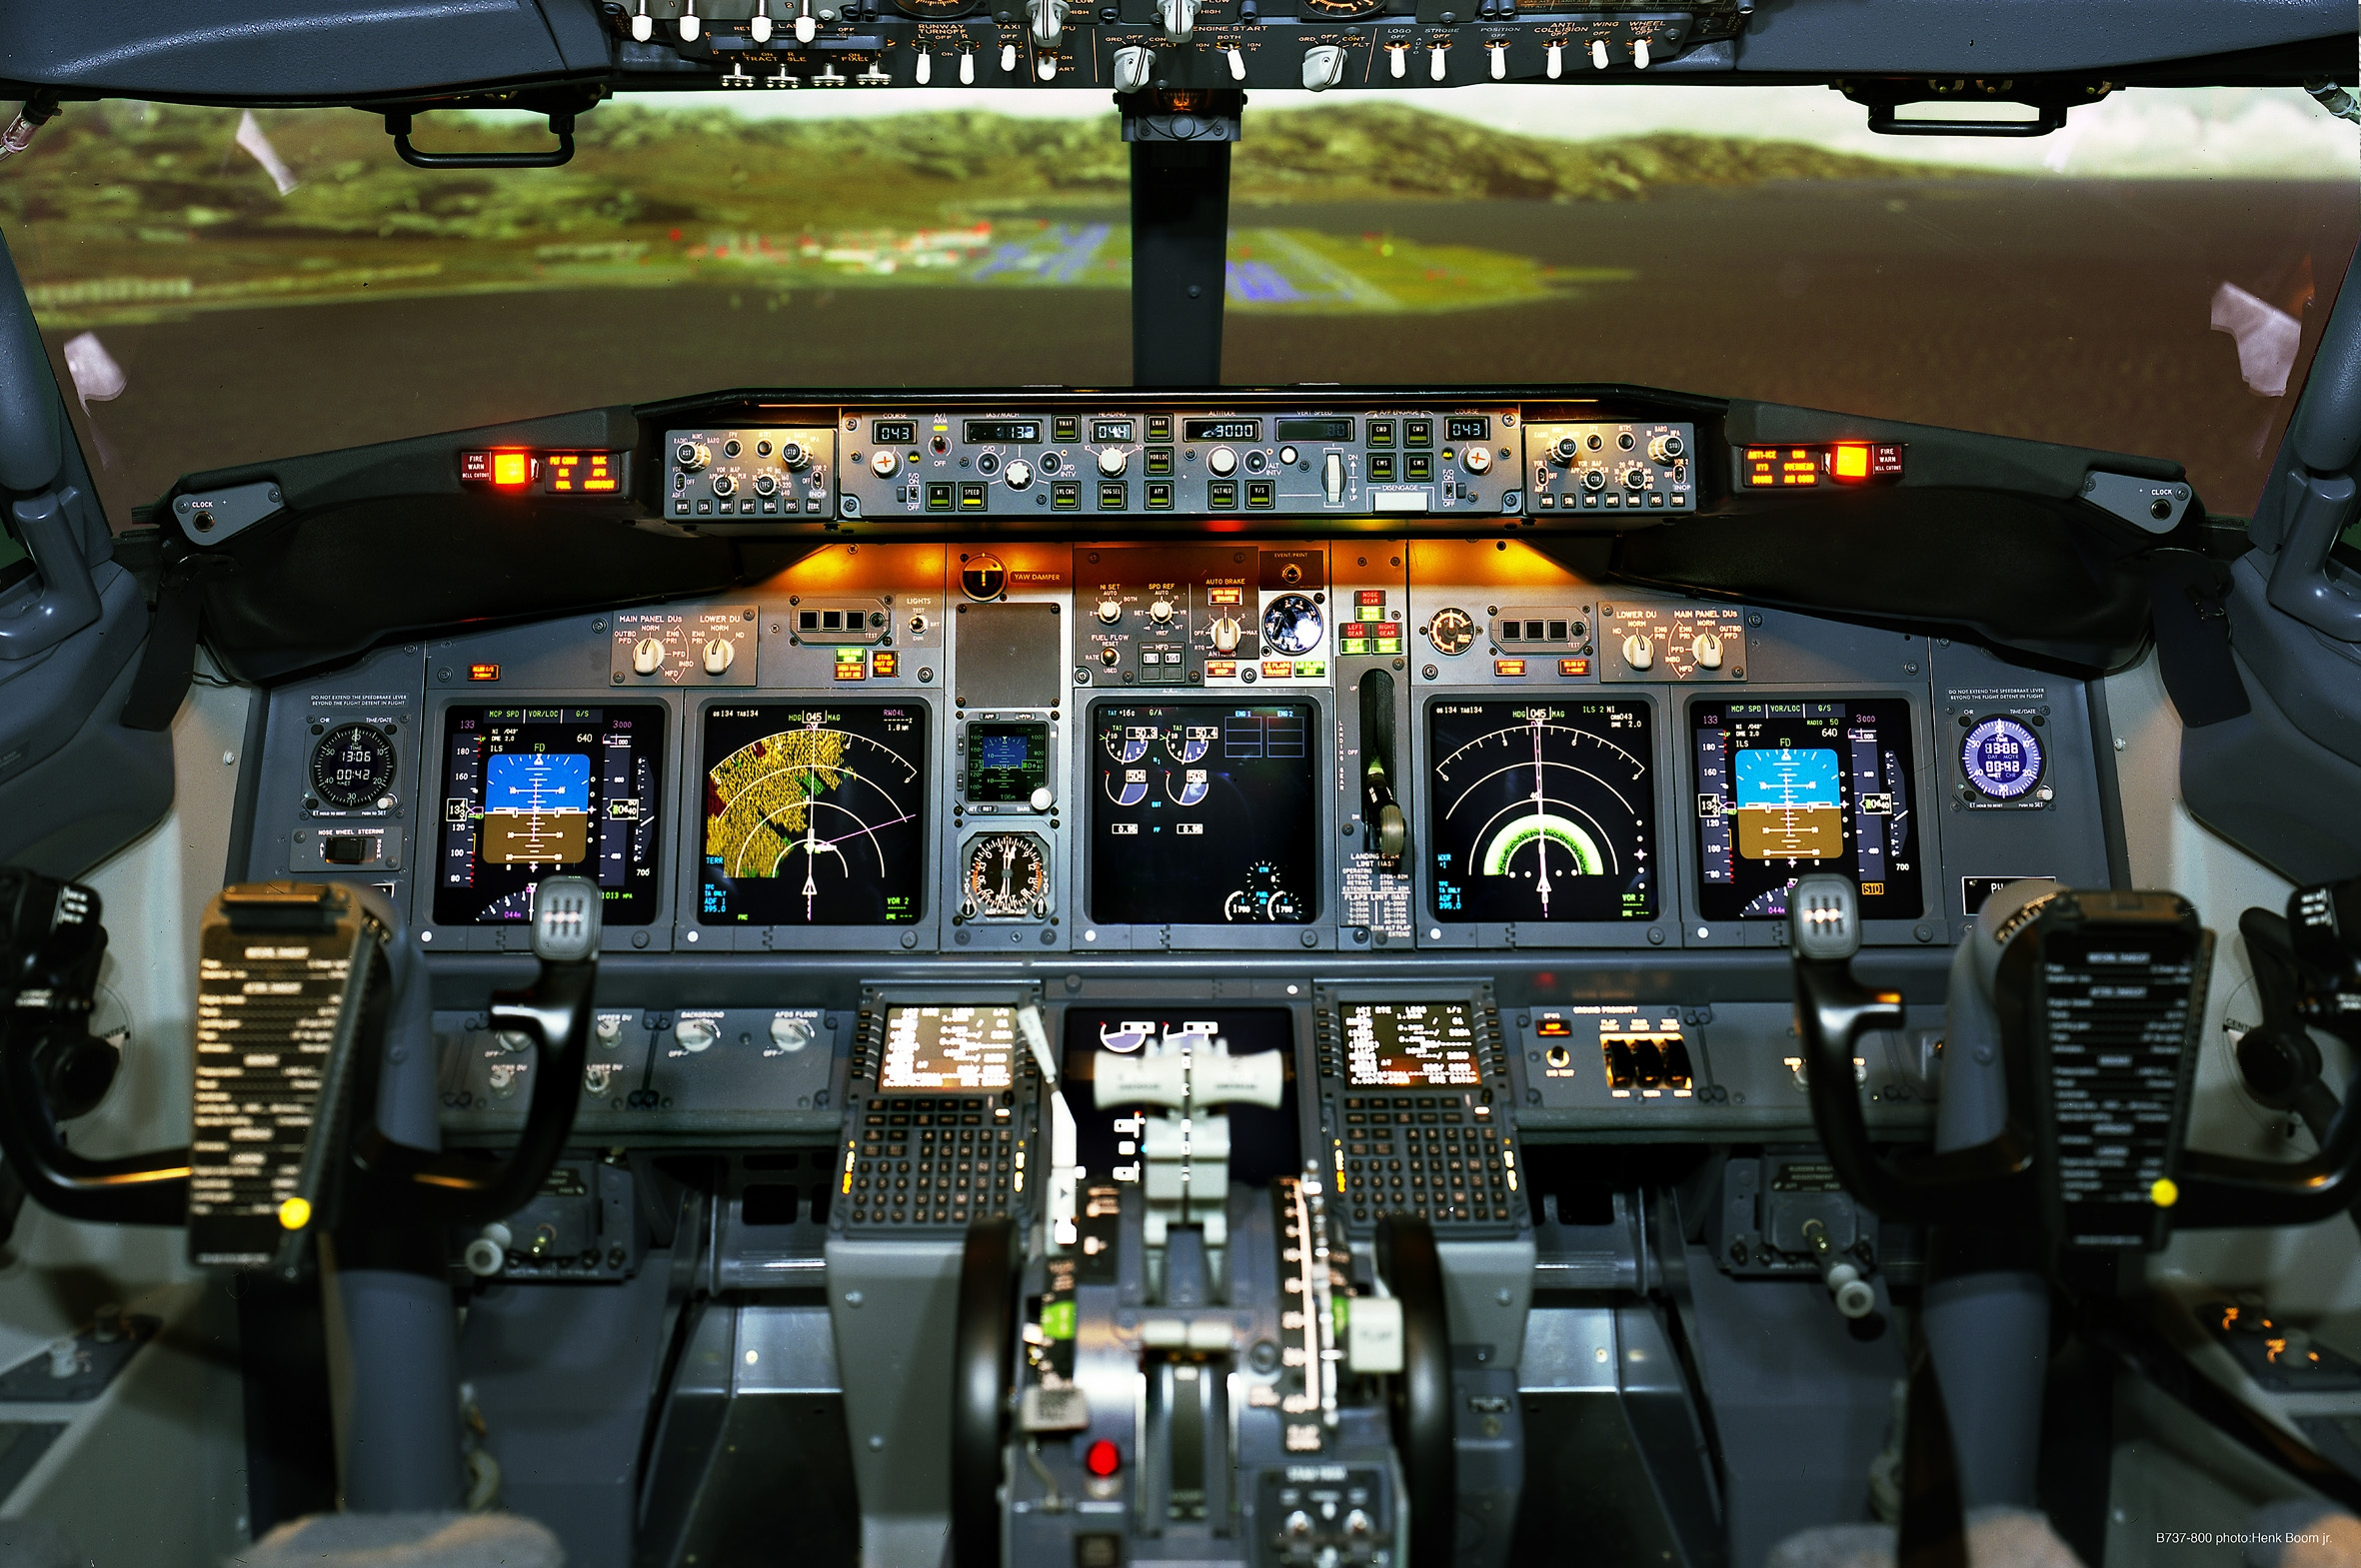 helicopter pilot jobs in usa with Nasa Pilot Cockpit Flight on 733242383052982912 furthermore View besides Bill Kirby Jr Healthy Lifestyle Fitness Ch ion Says Is Investment In Yourself besides Simulatoren Zu Verkaufen likewise Iaf Chopper Crashes In Sitapur Uttar Pradesh 7 Killed.